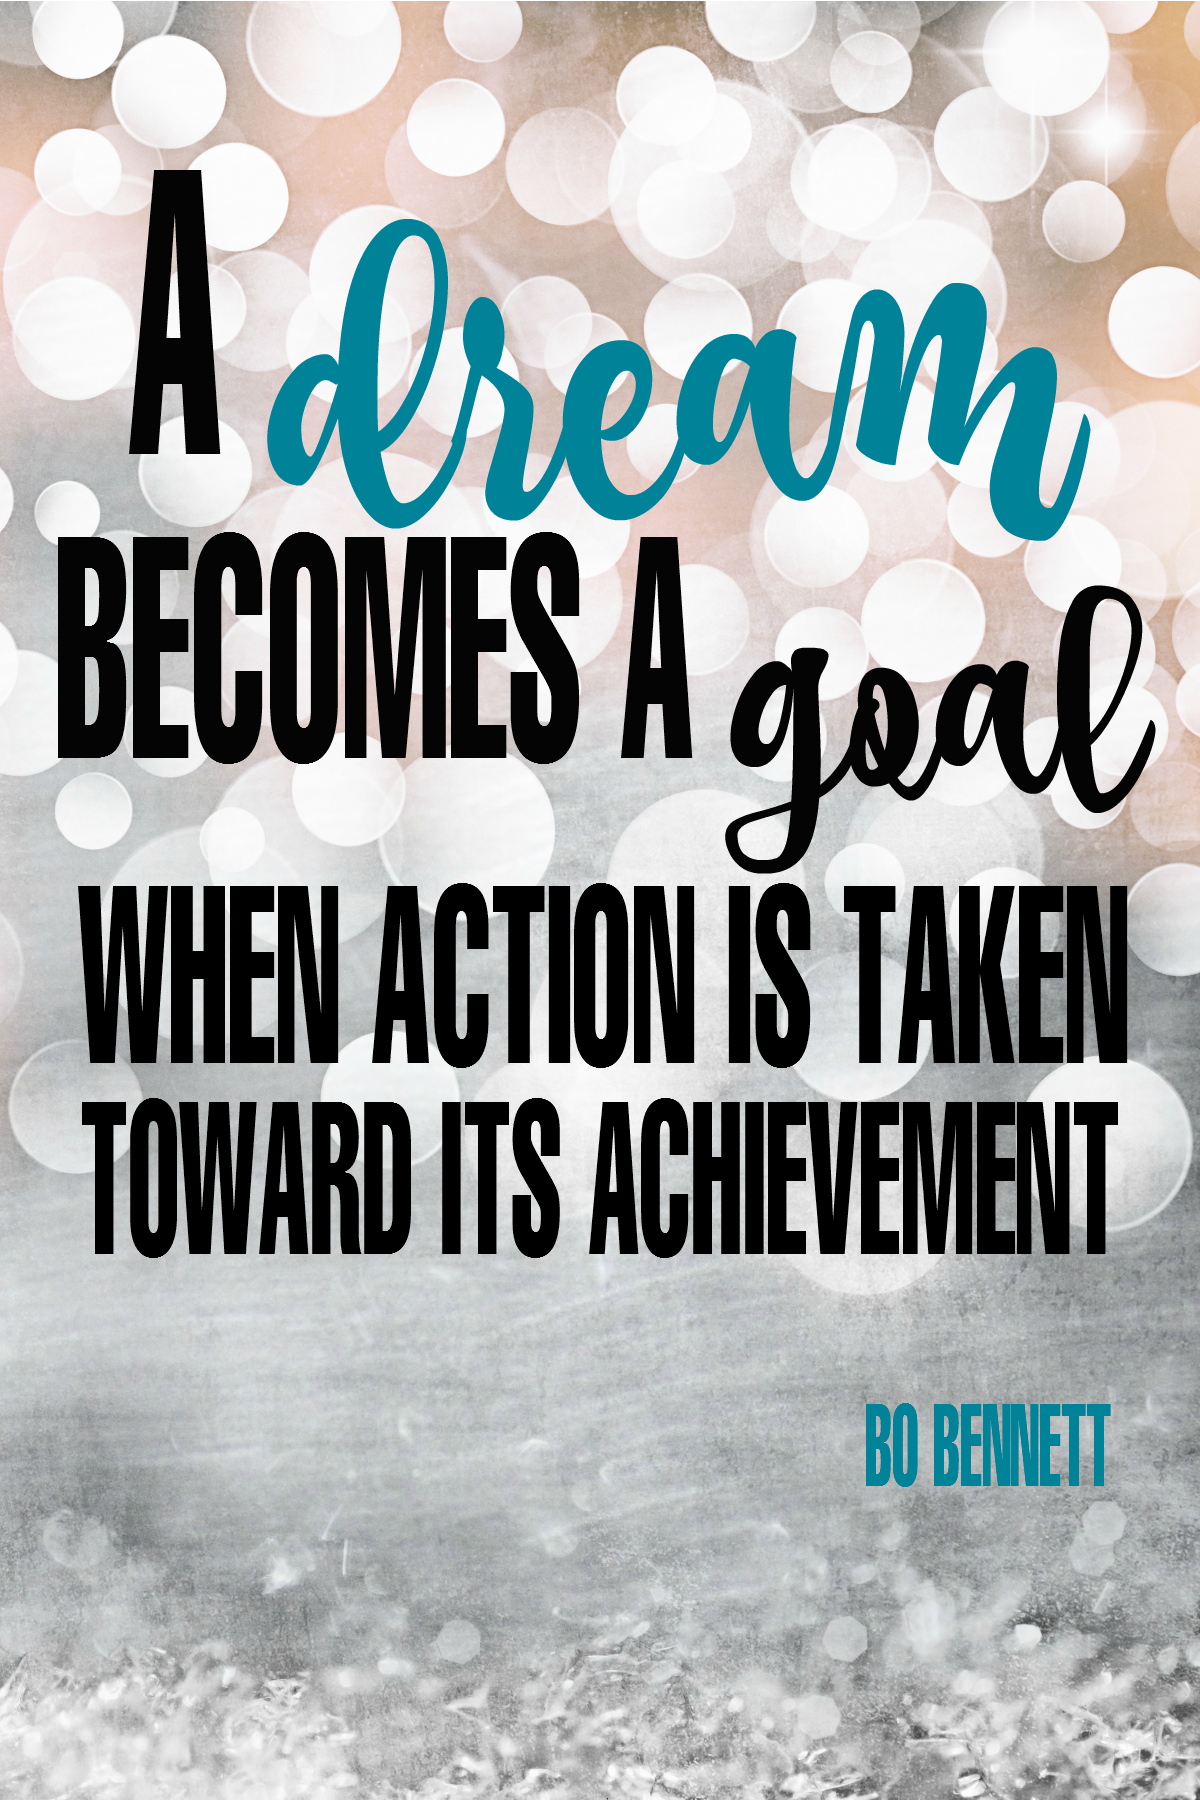 Goal Quotes Mesmerizing 17 Inspiring Quotes About Goals  Goal Personal Development And . Review